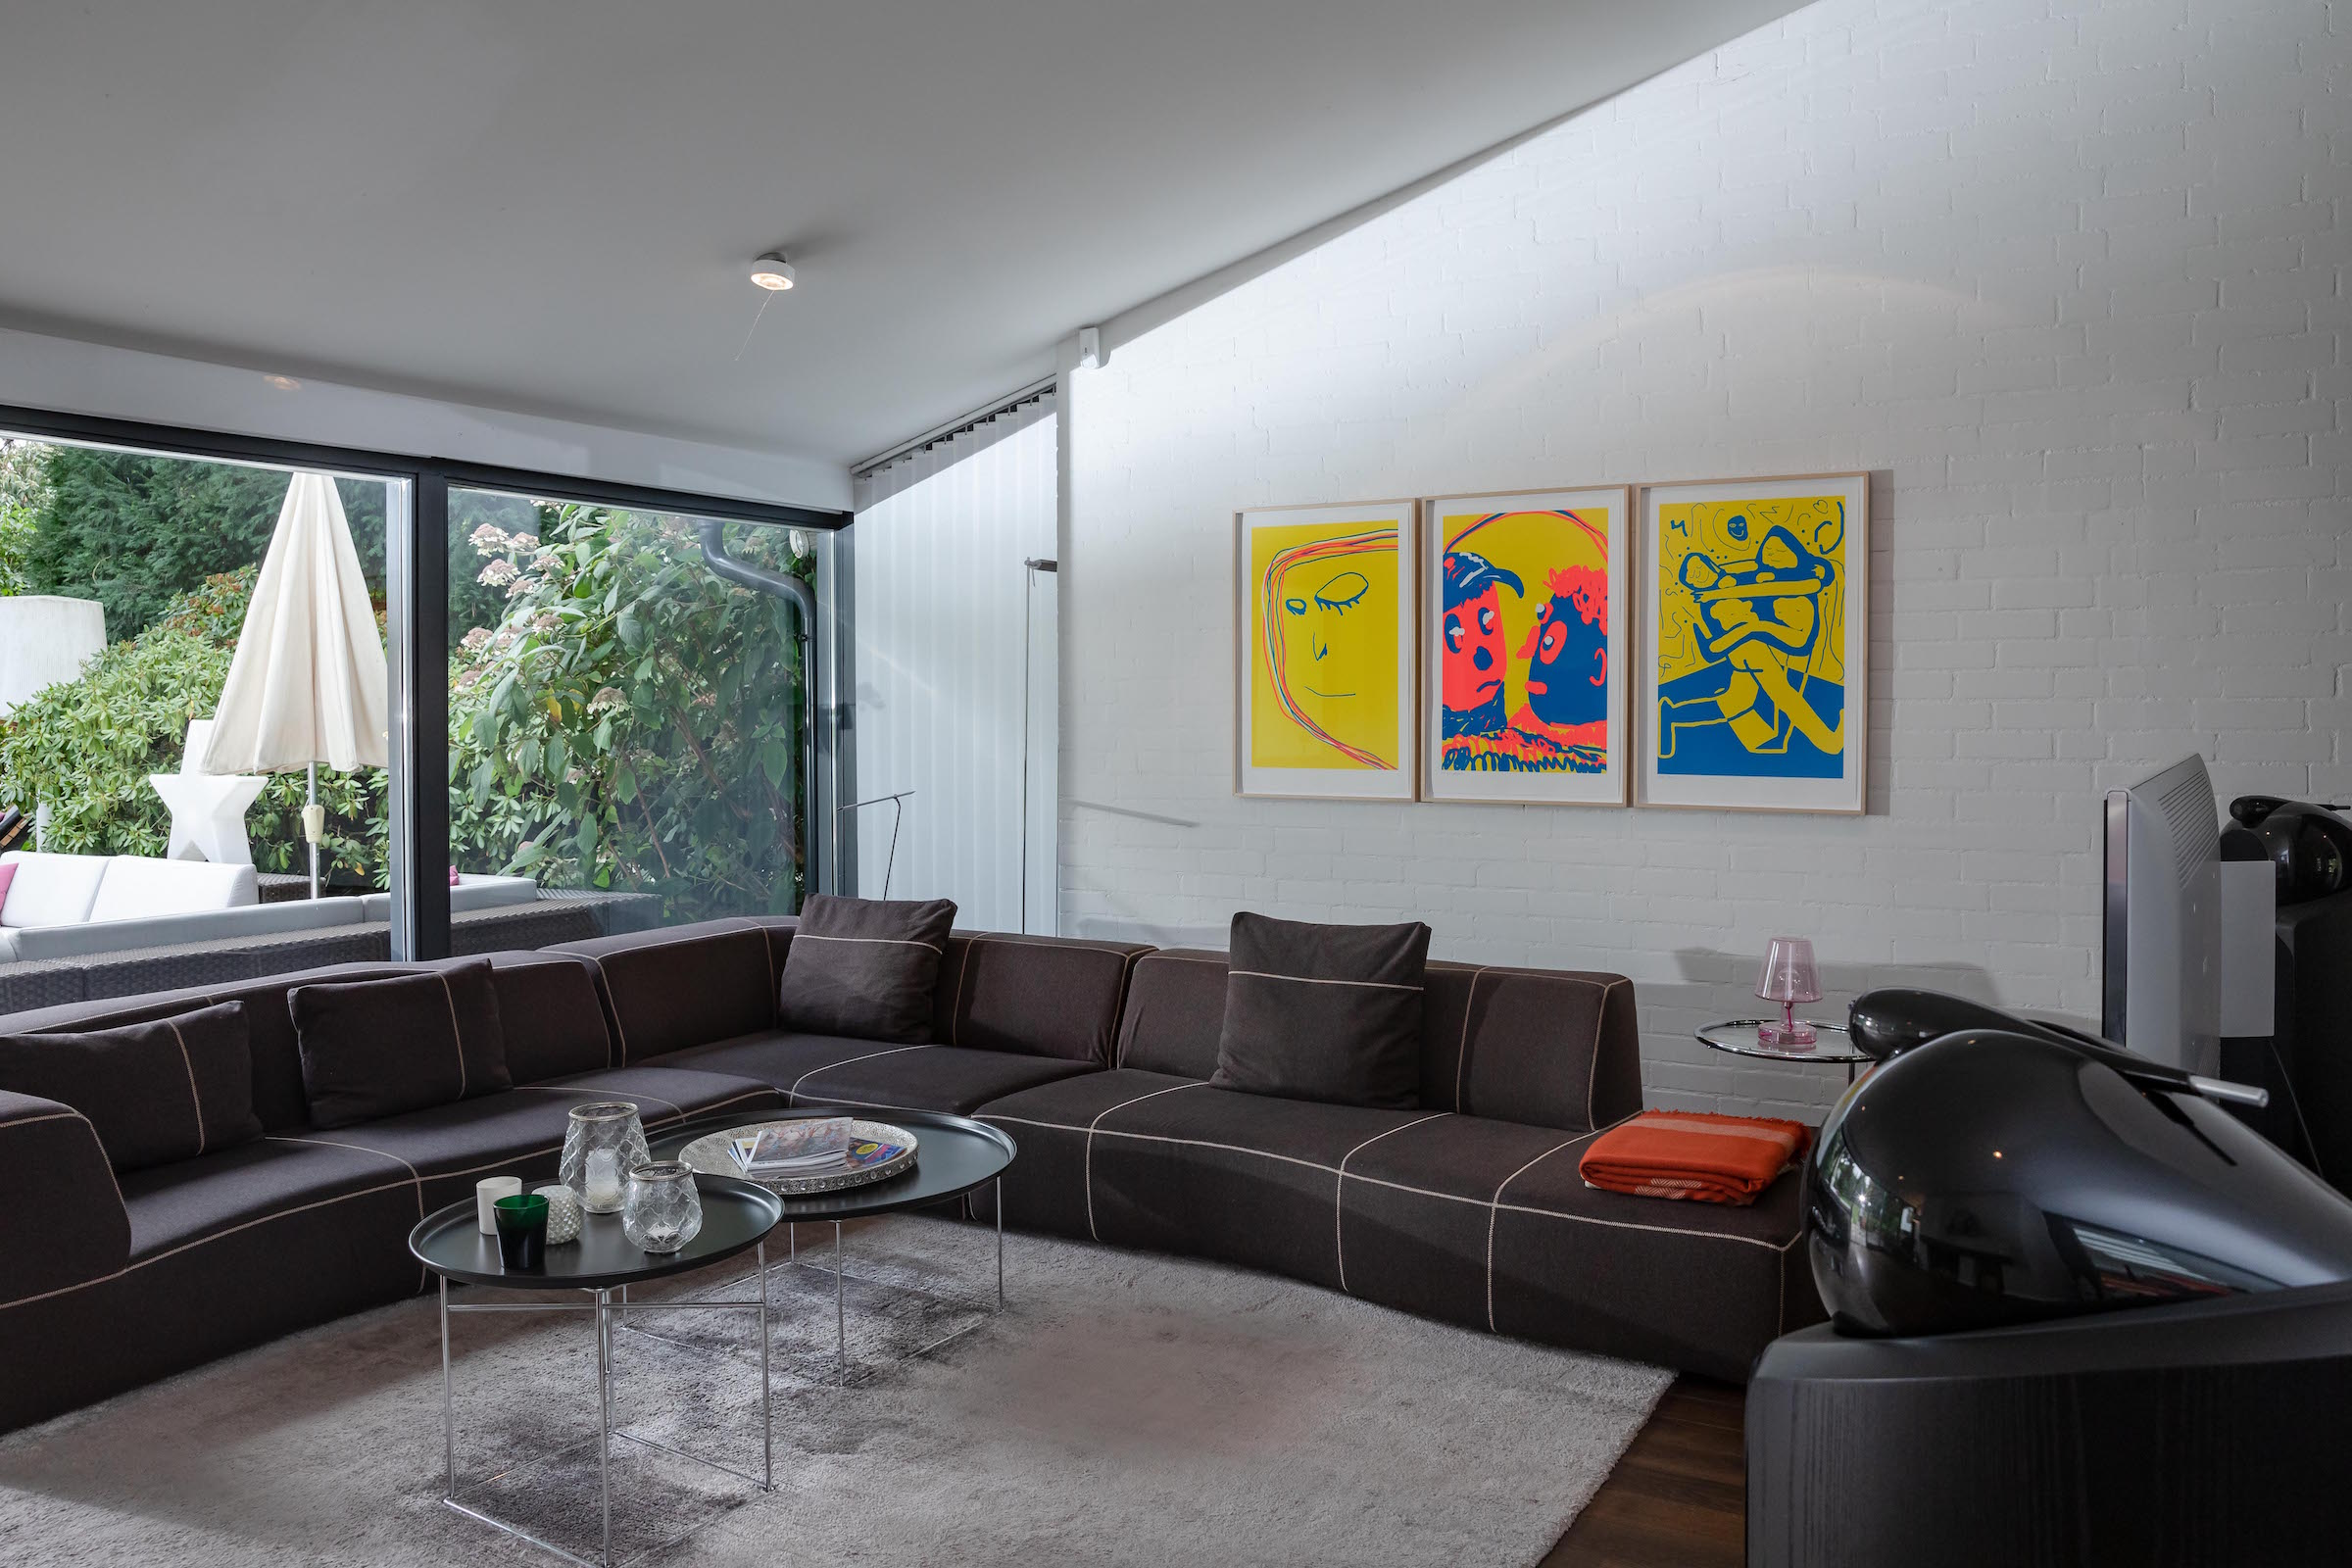 In the living room: Austin Lee, Alight, 2017. Furniture: Sofa Bend and tables by B&B Italia. Courtesy of Collection von Kelterborn.